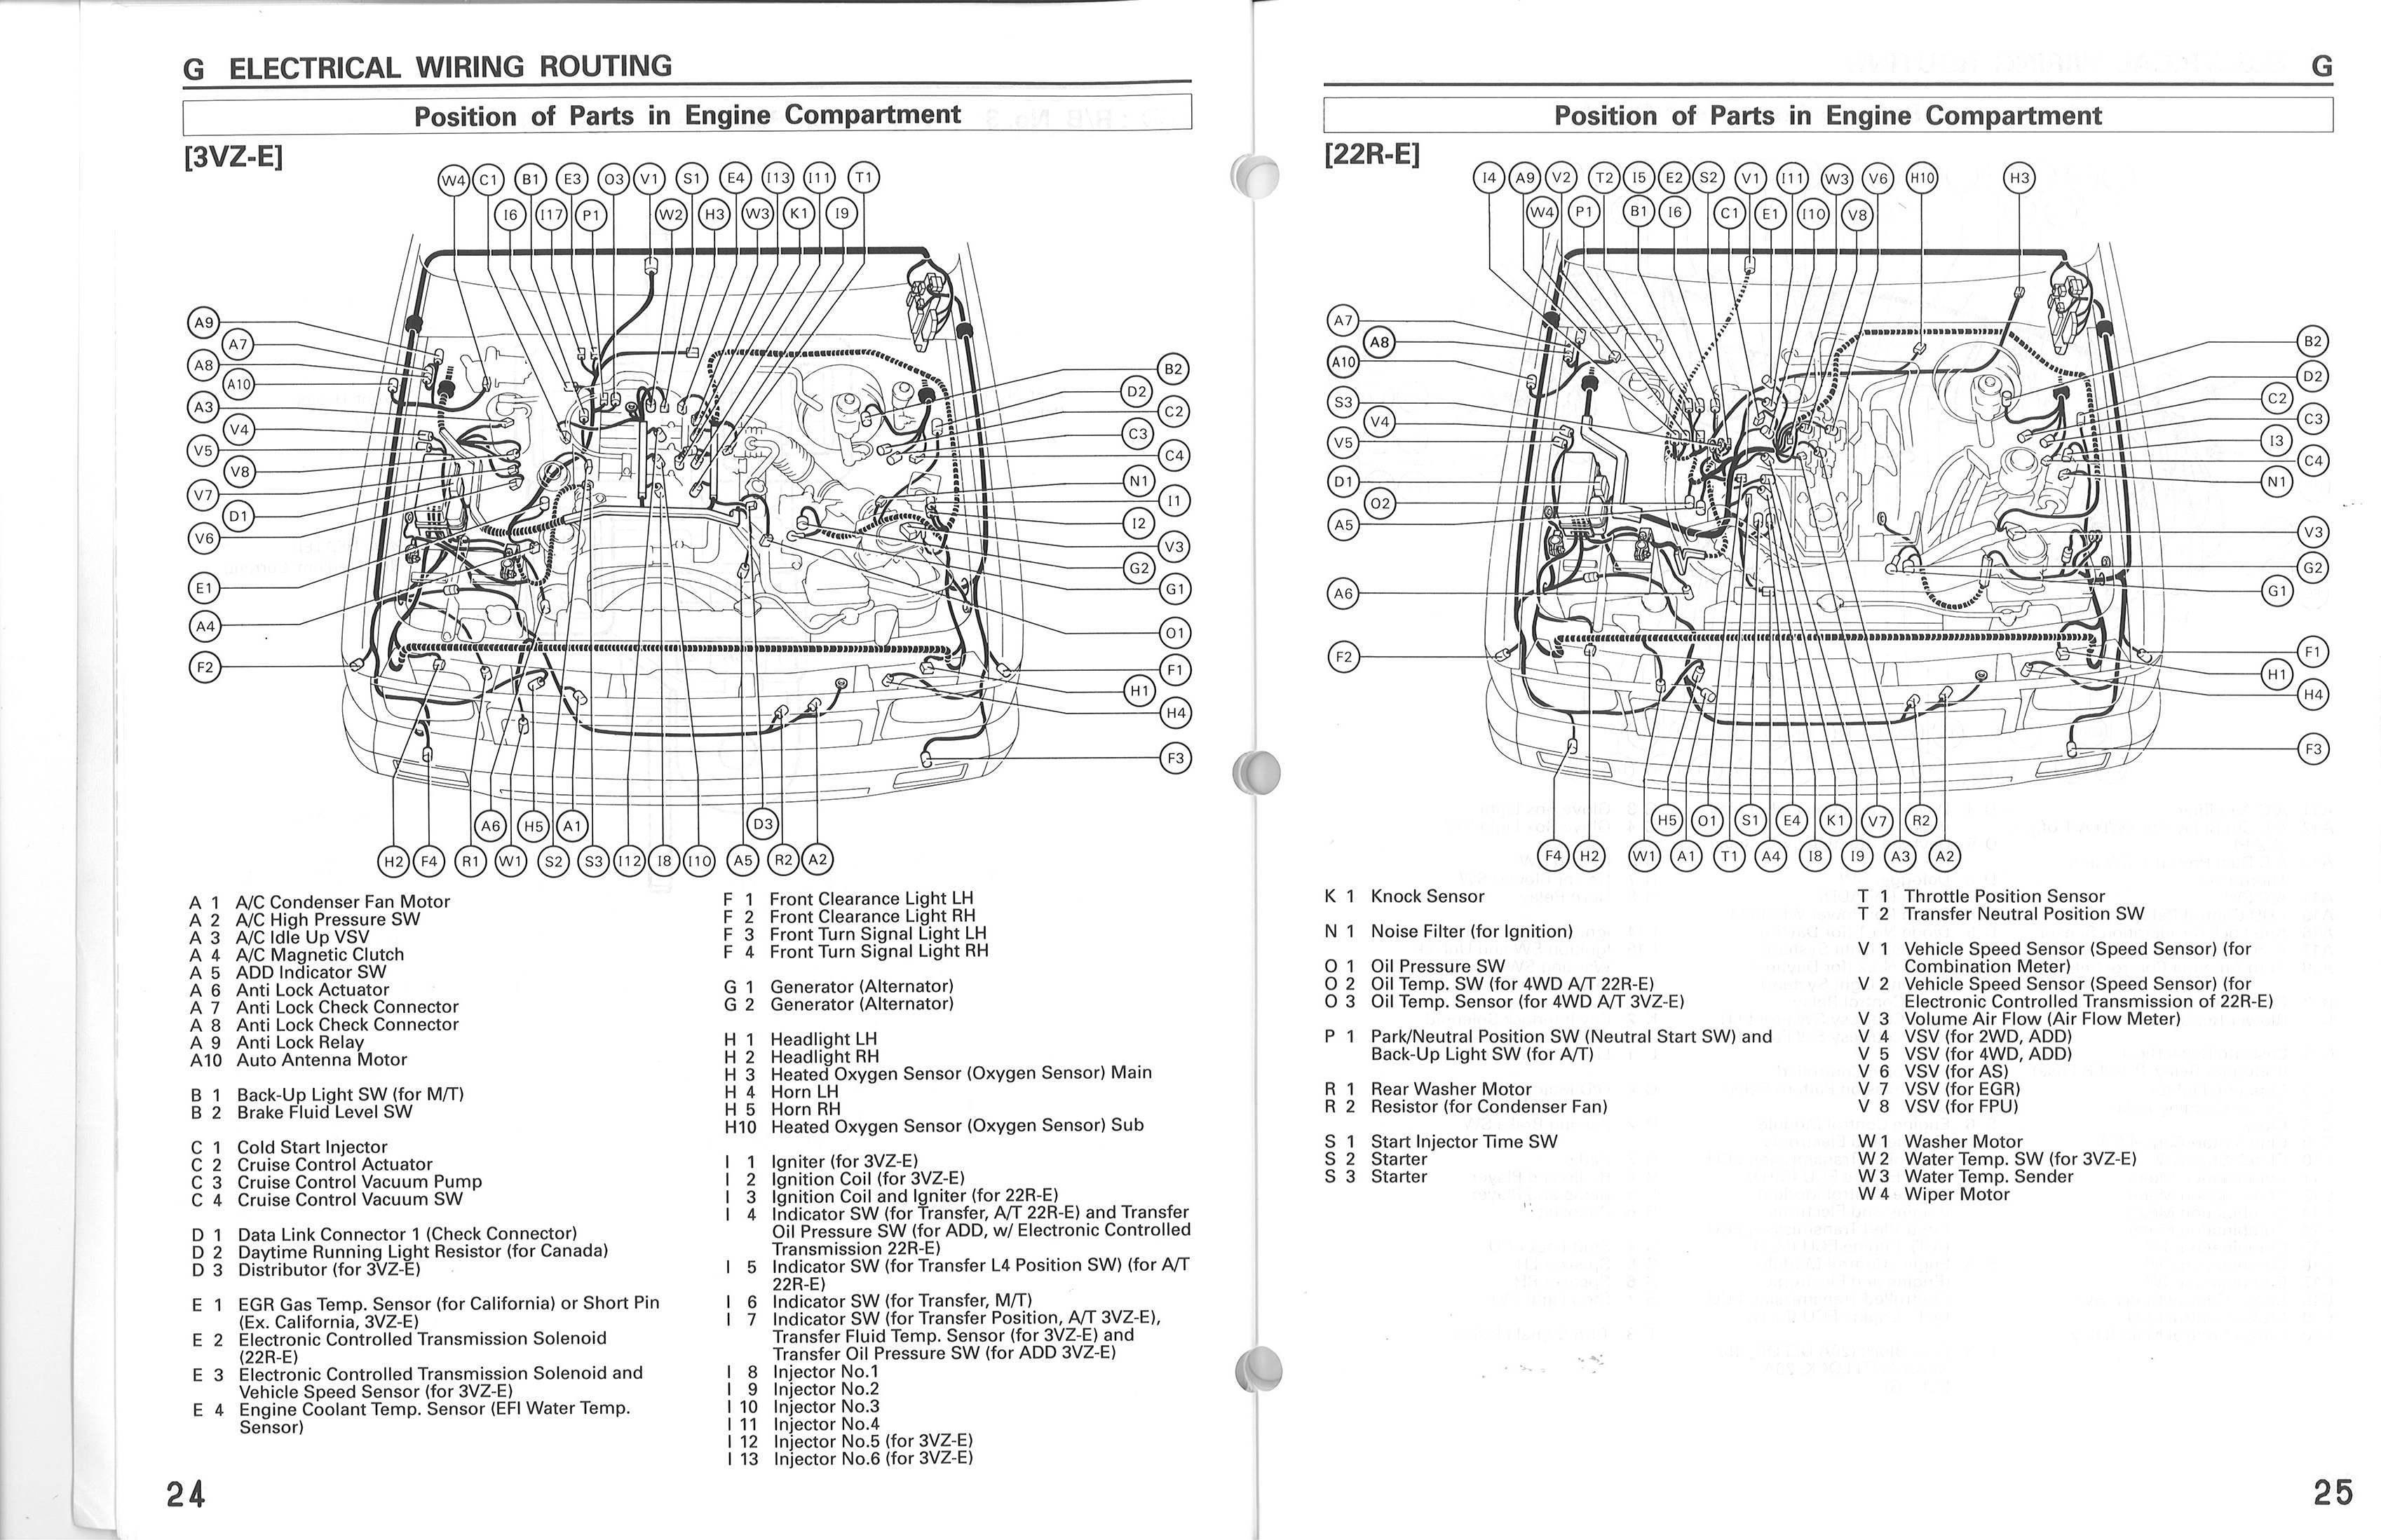 Electrical Wiring Routing Diagram 88 Toyota Pickup 22r - Schematic